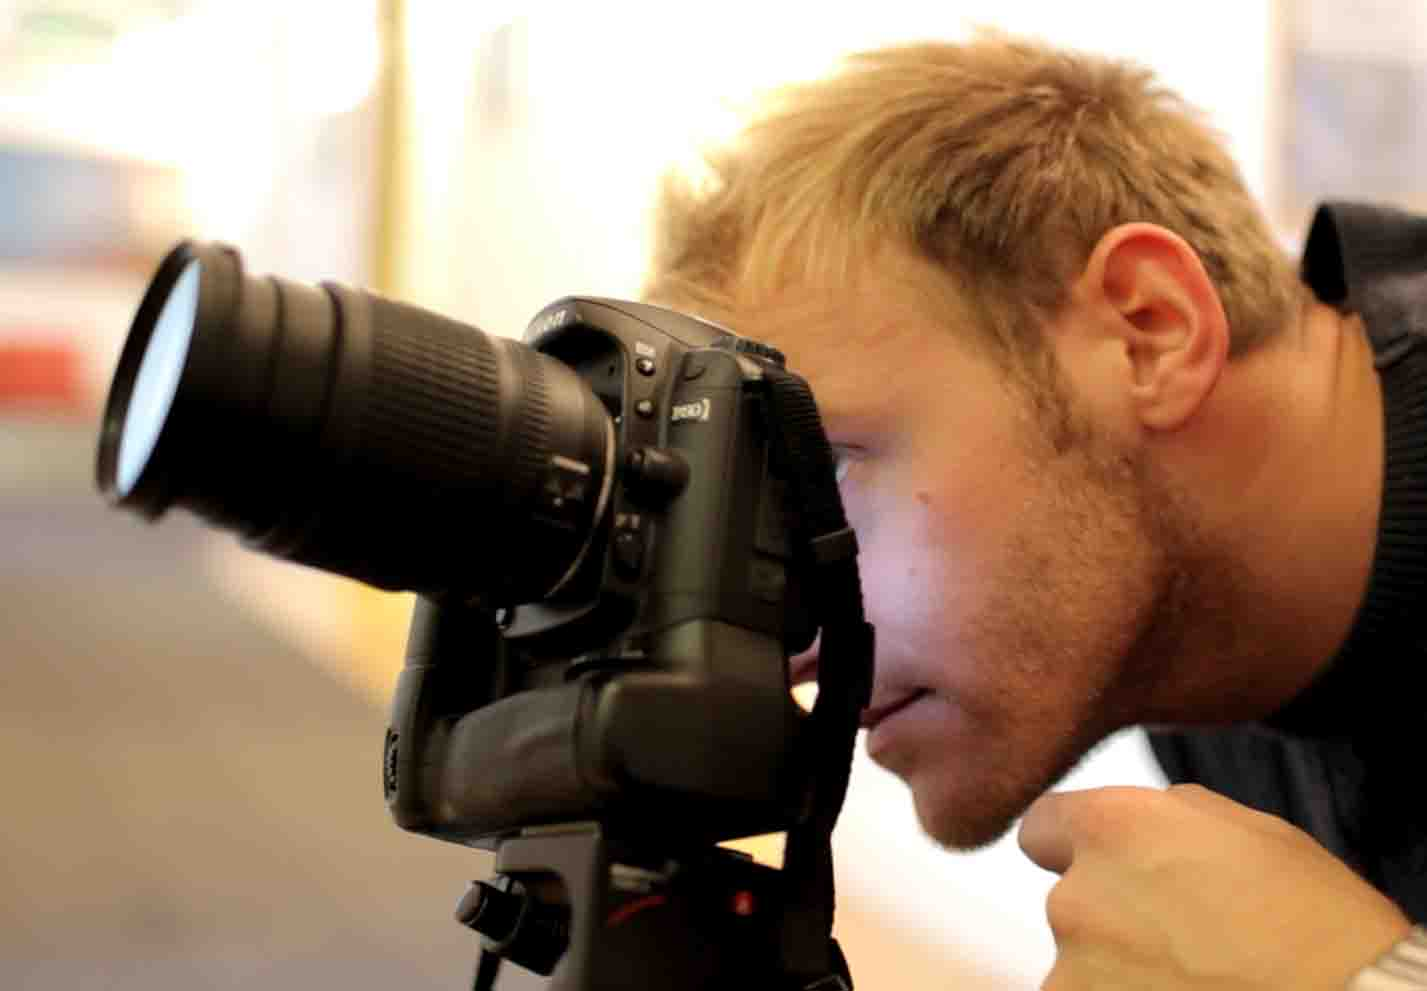 video production liverpool - PHOTOGRAPHY